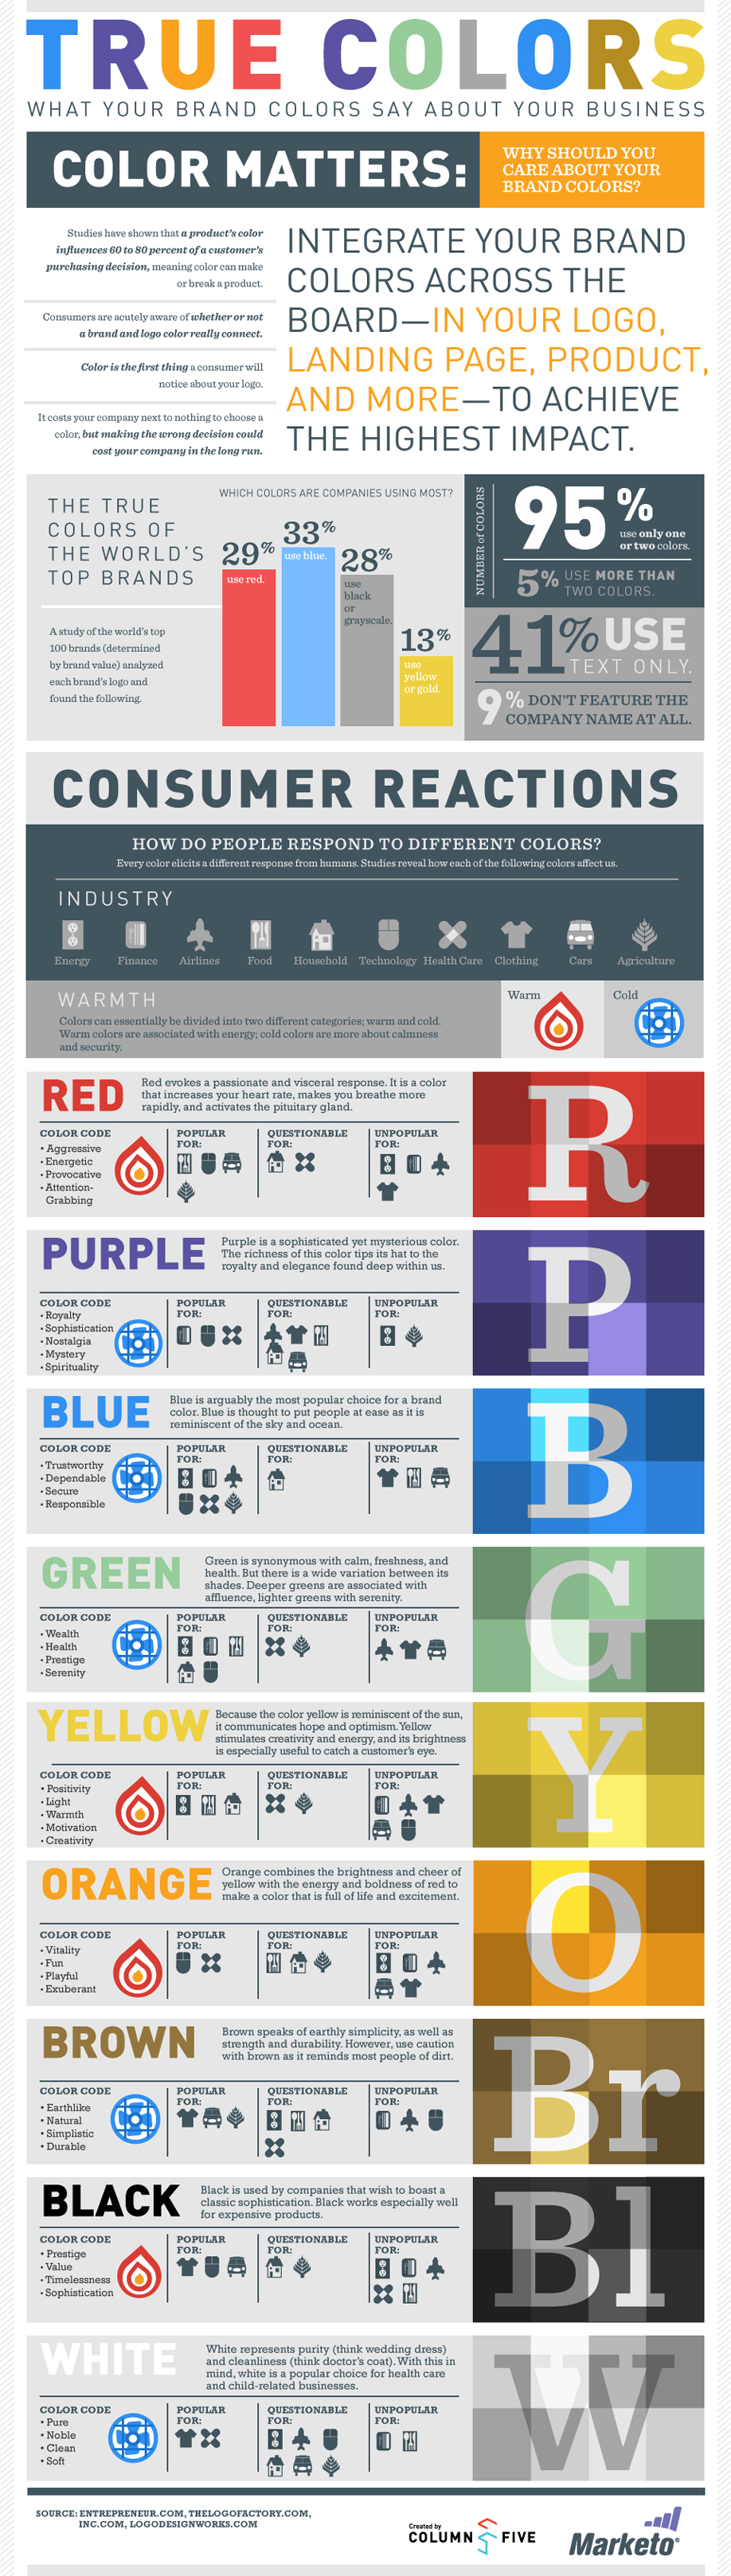 What your brand colors say about your business nvjuhfo Images